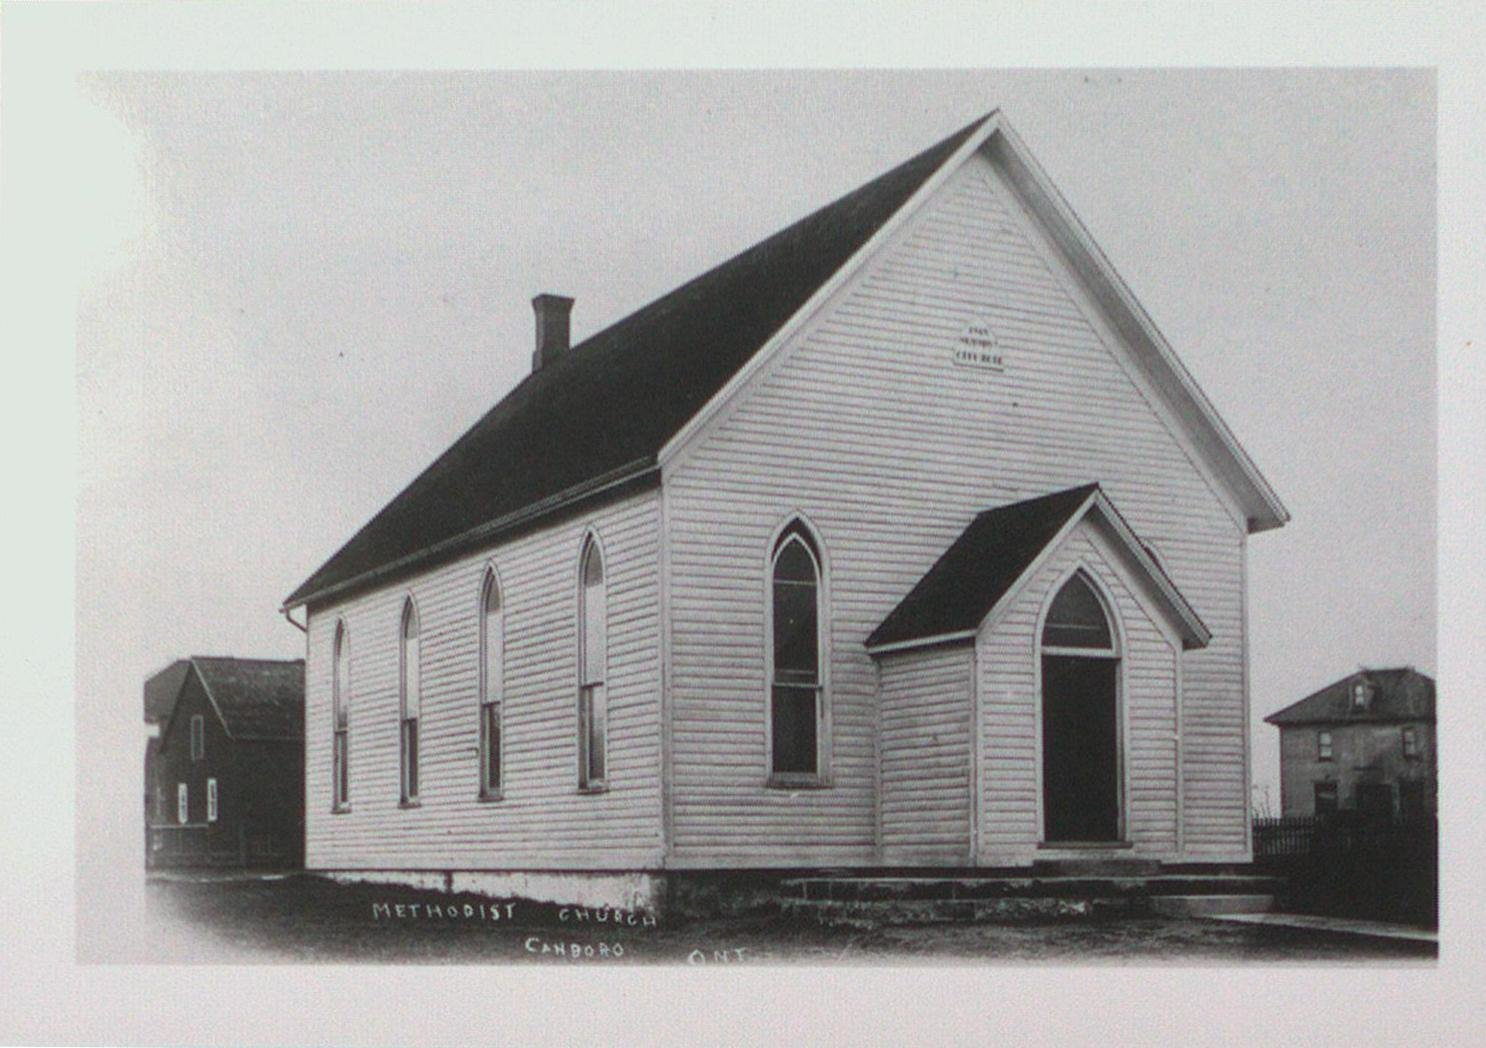 The Methodist Church, Canboro